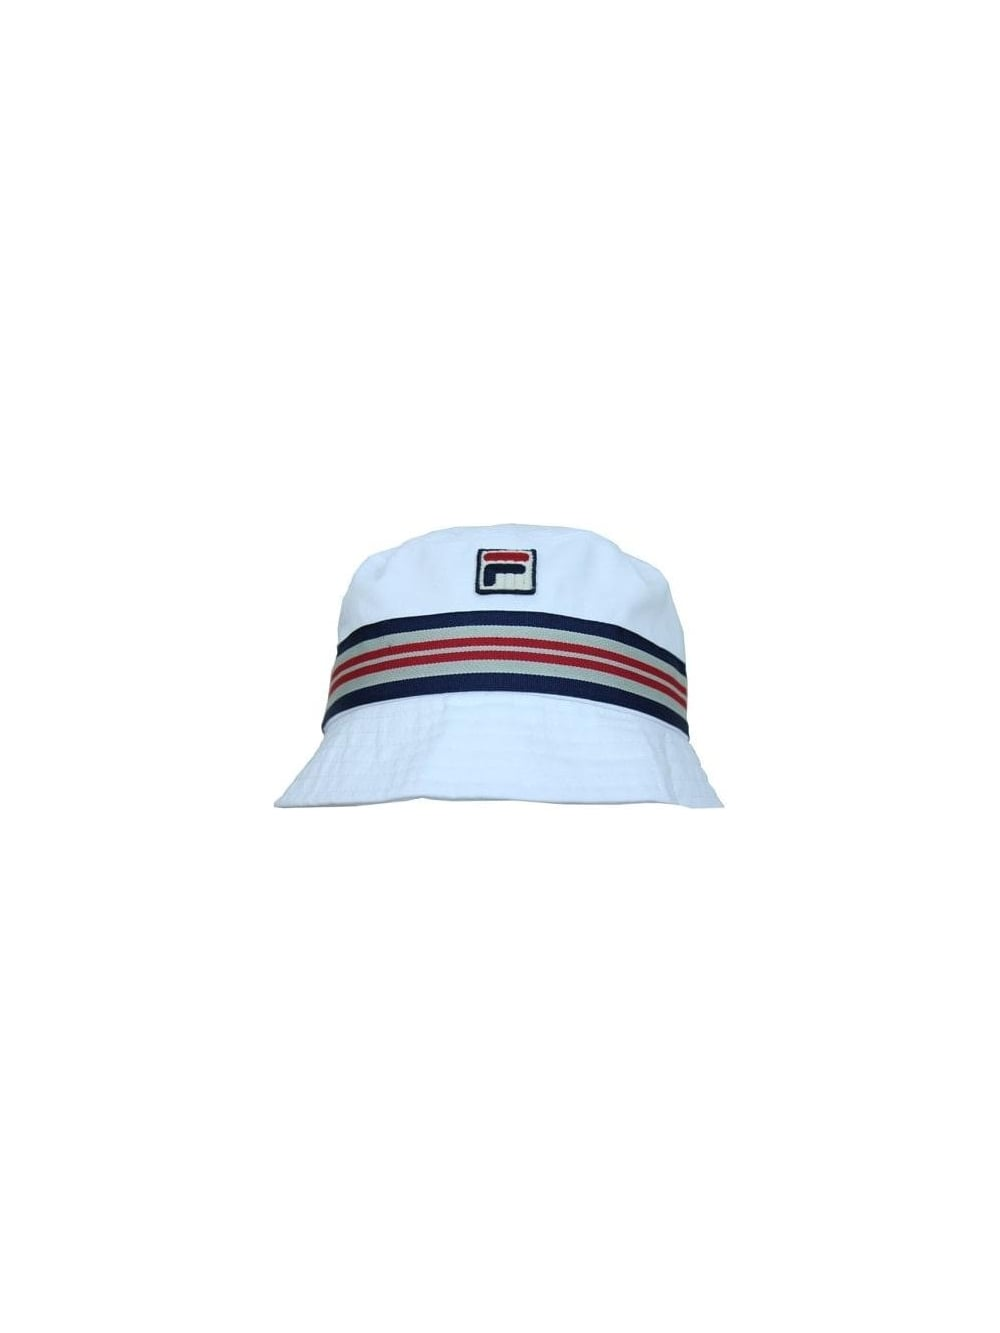 55cc0b86 Fila Casper Bucket Hat in White - Northern Threads